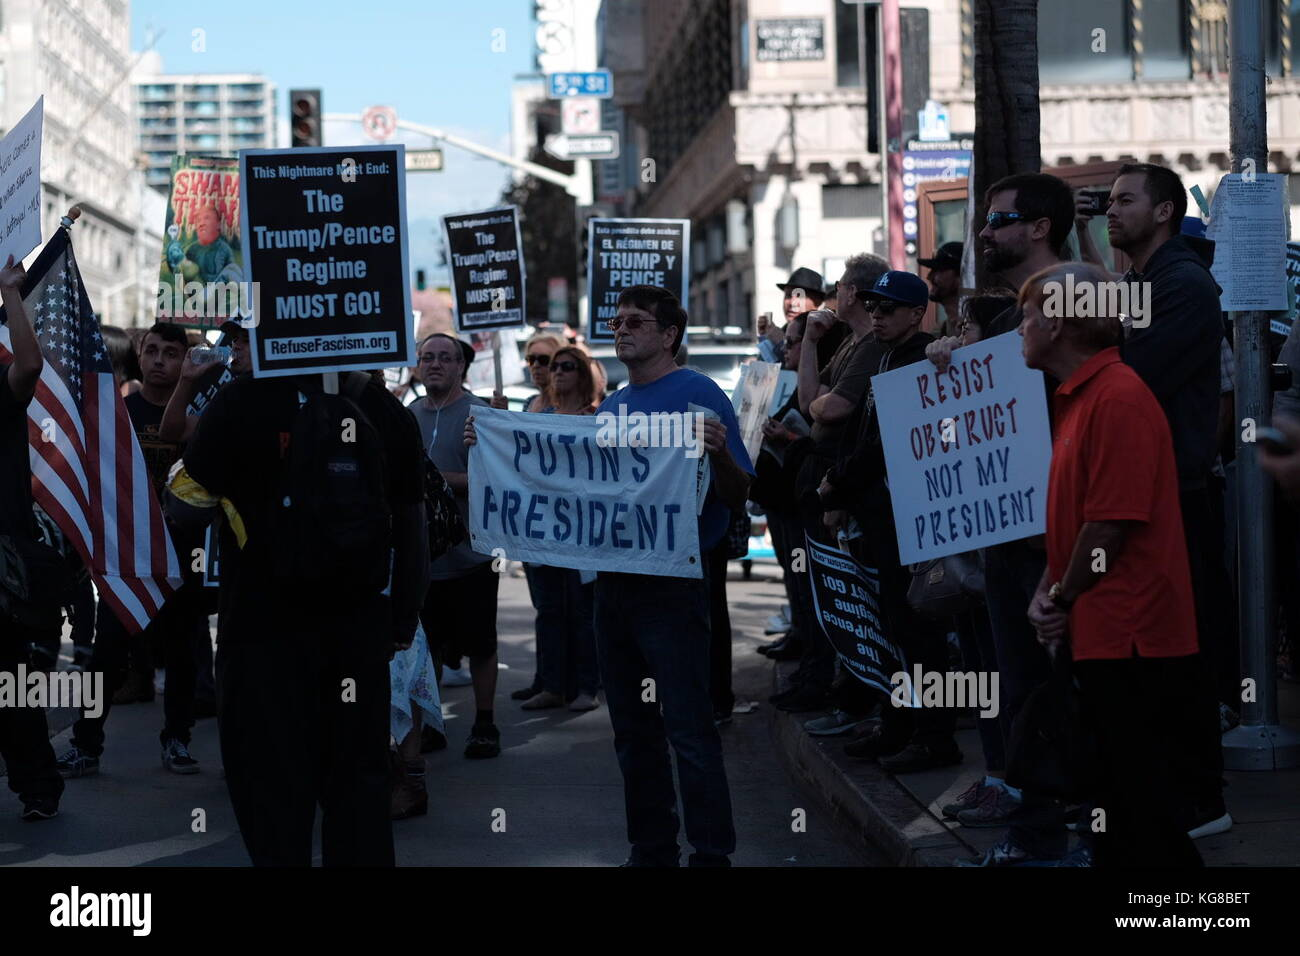 Anti- and pro-Trump protesters face off in downtown L.A. rally Credit: Eduardo Salazar/Alamy Live News Stock Photo